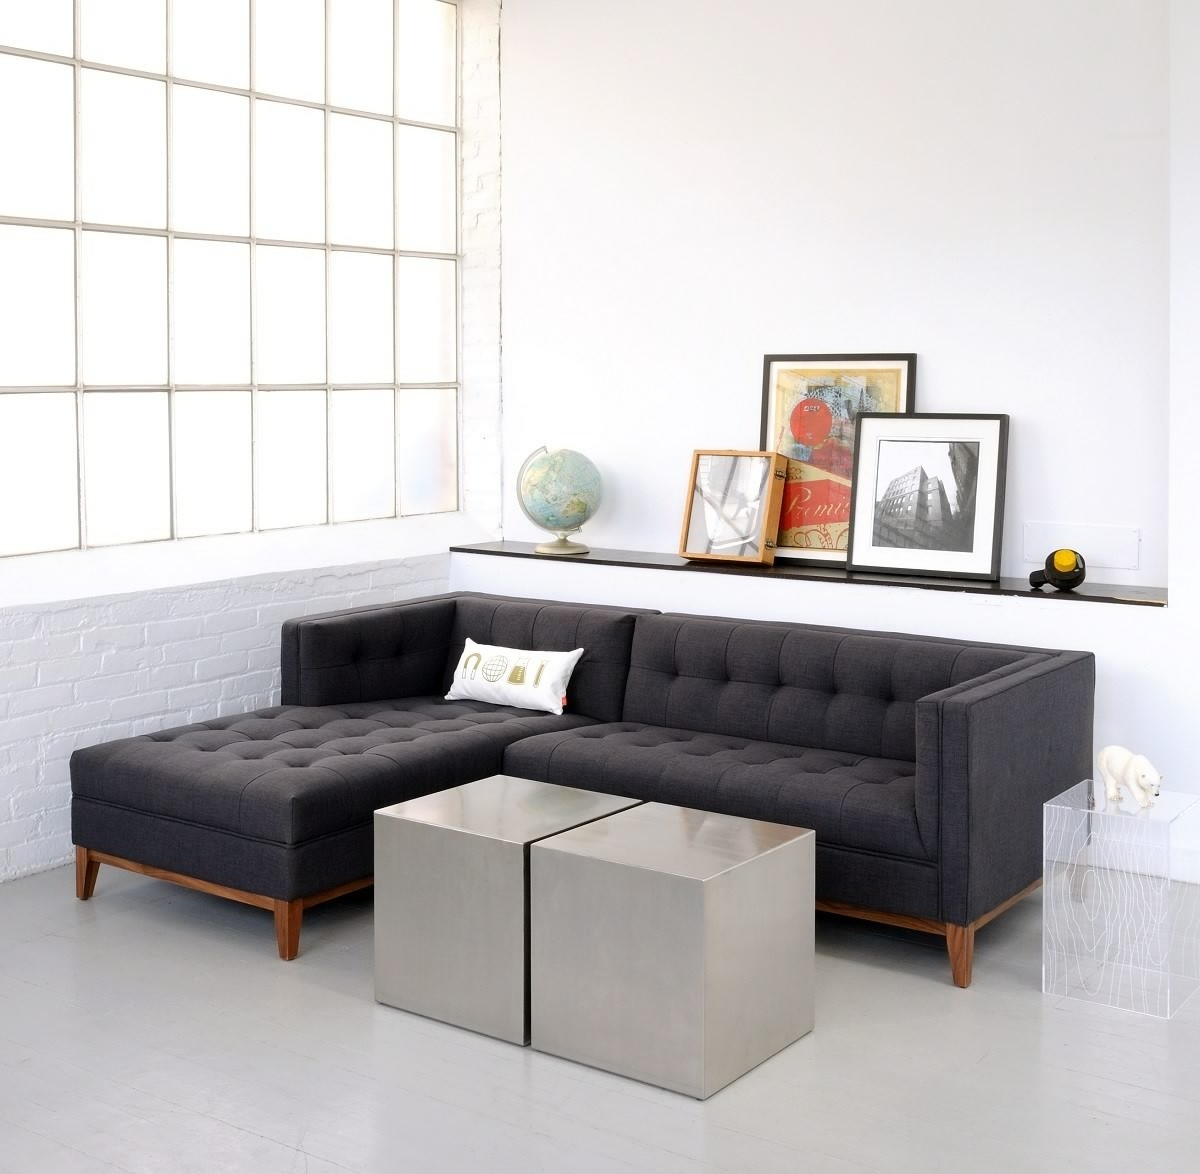 Apartment Sofas Home Decorating Inspiration In Apartment Sofa Sectional (Image 3 of 15)